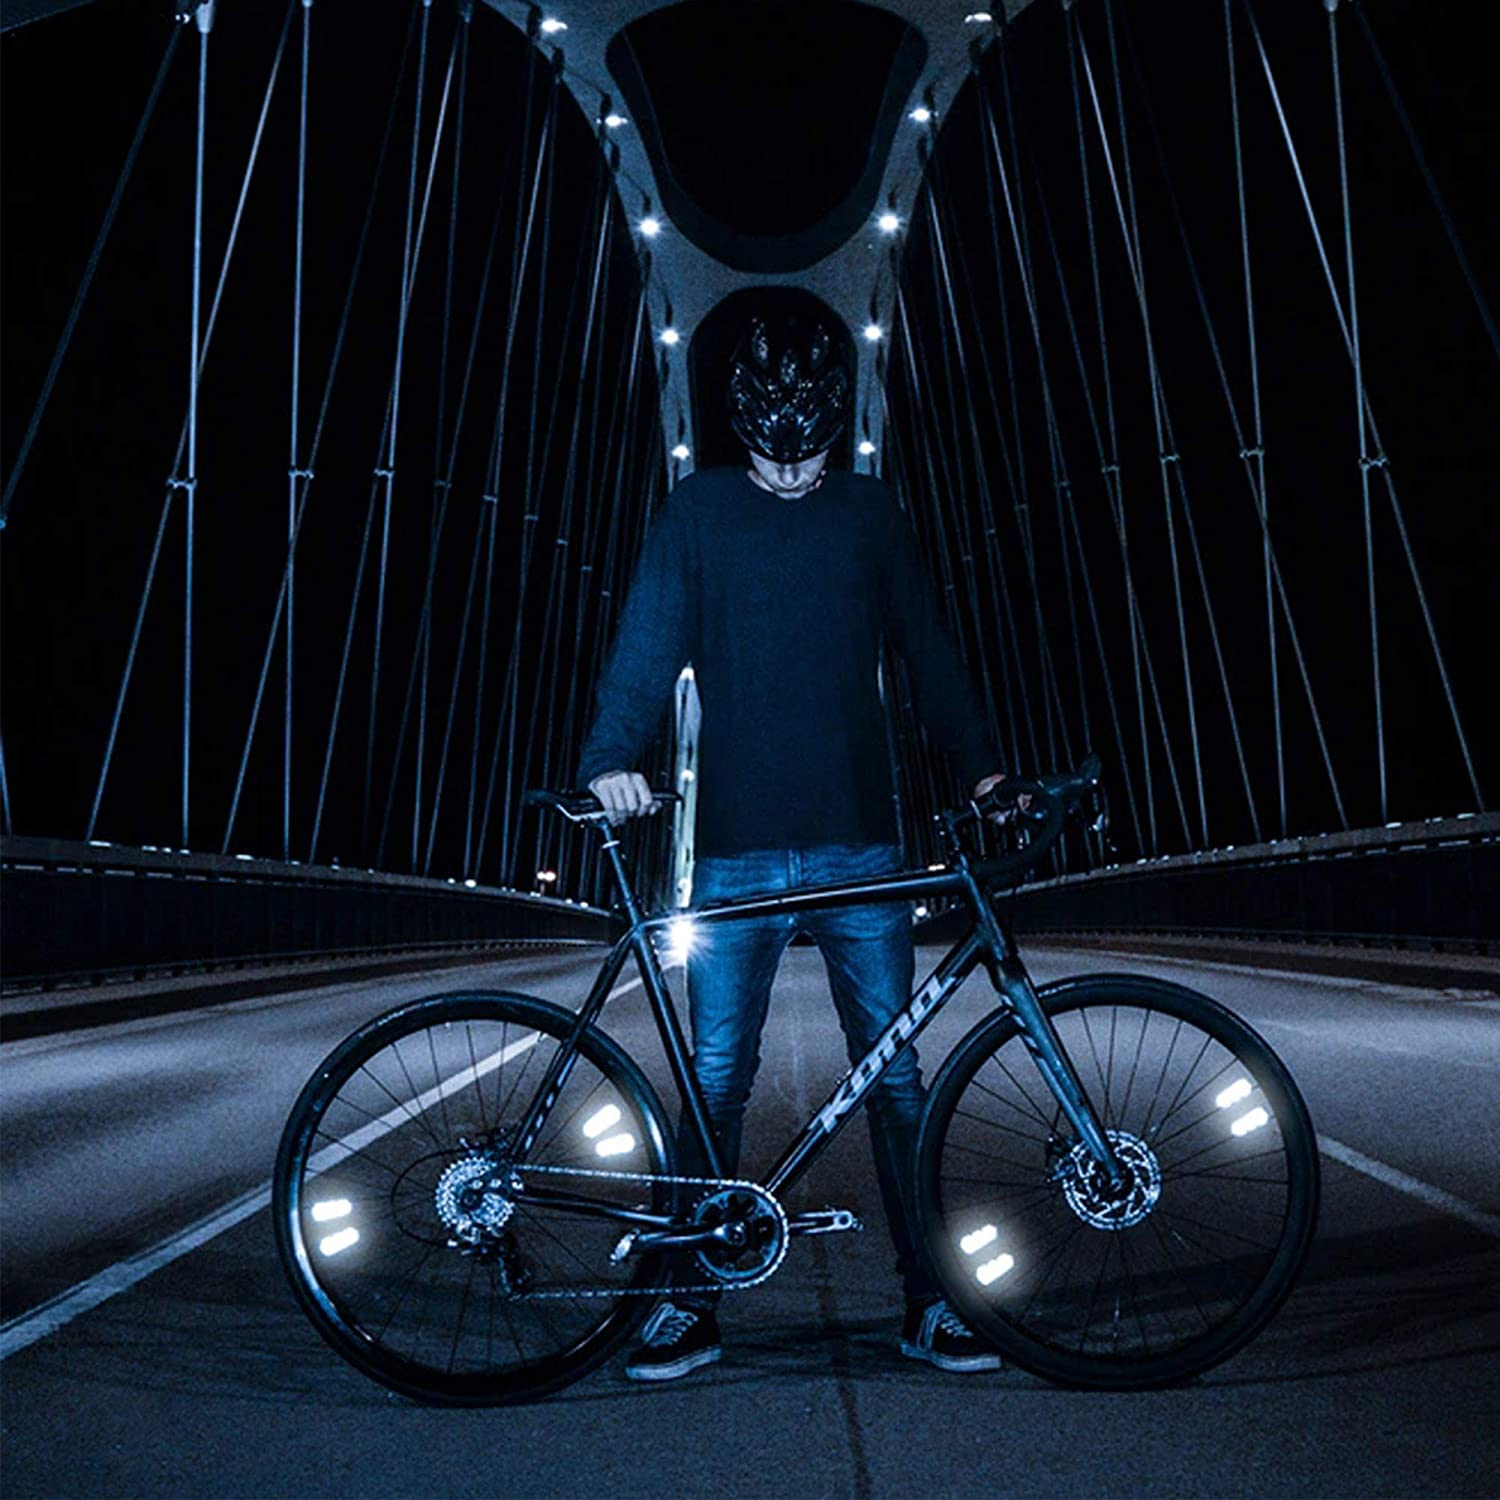 show original title Details about  /LED Magnetic Light Reflective Strobe running shoes to Cycling Foot Bicycle P9U7